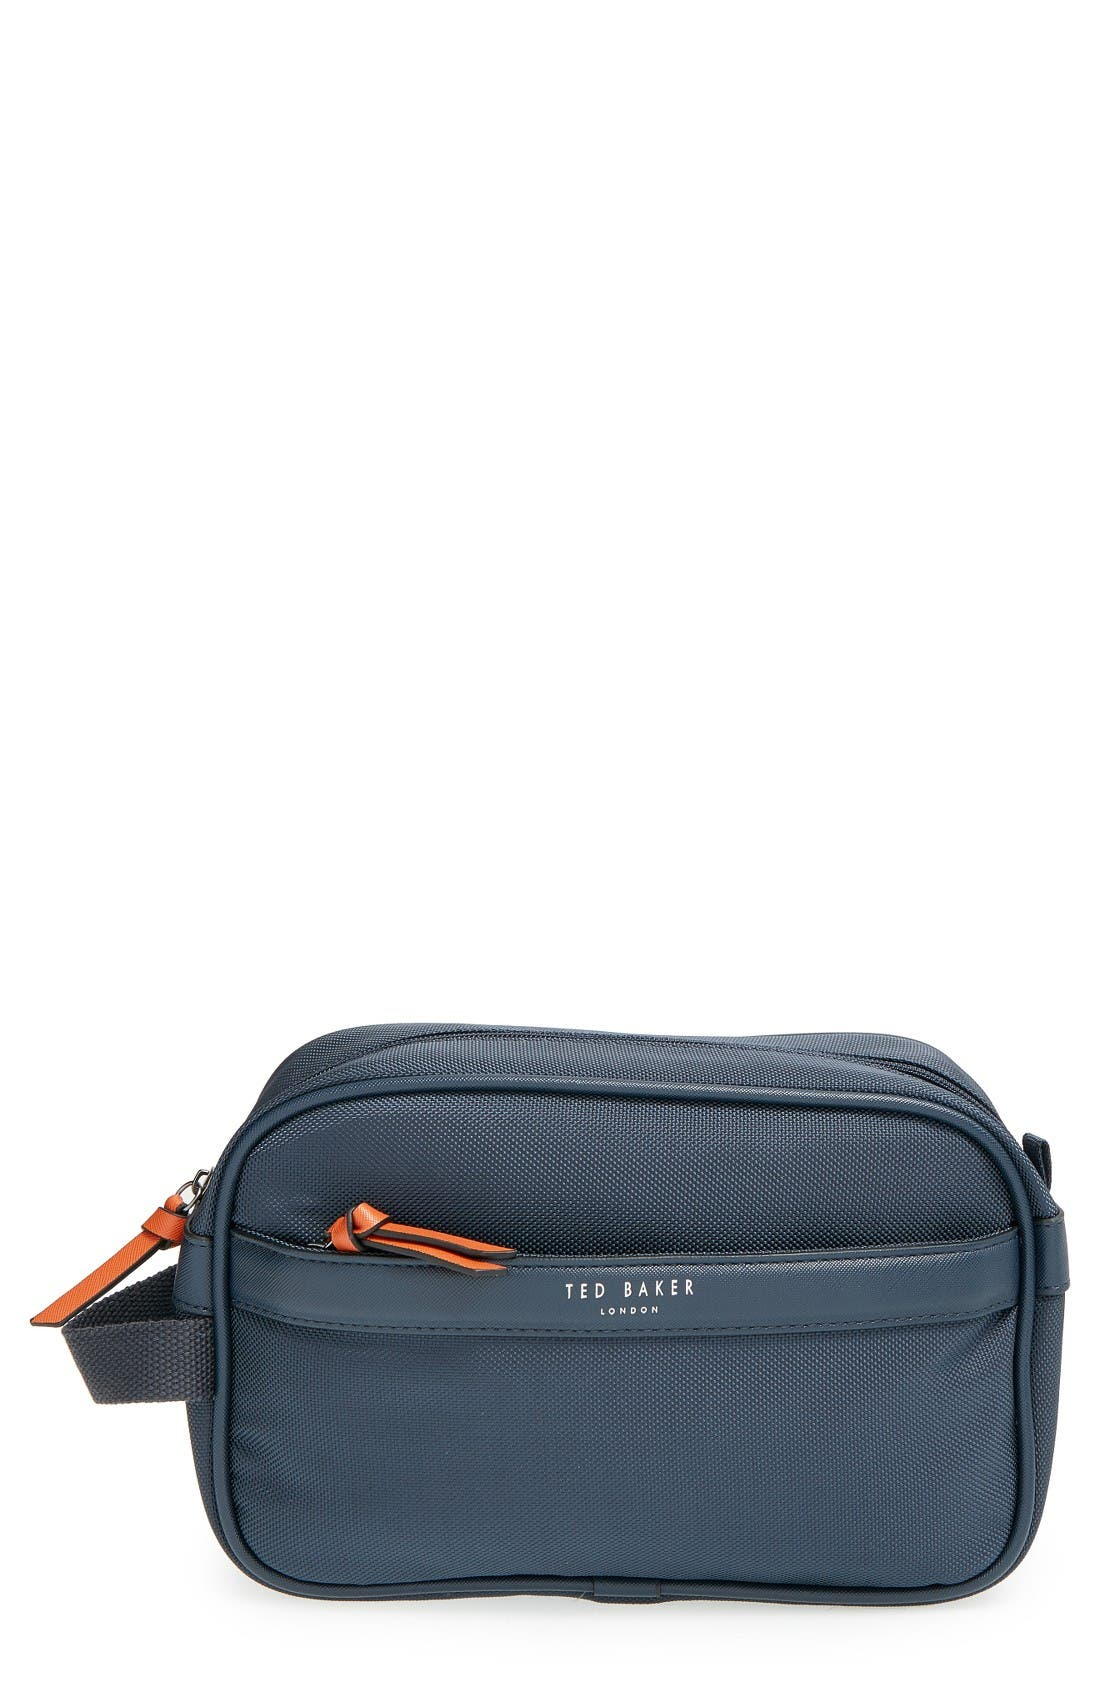 Ted Baker London Granula Dopp Kit